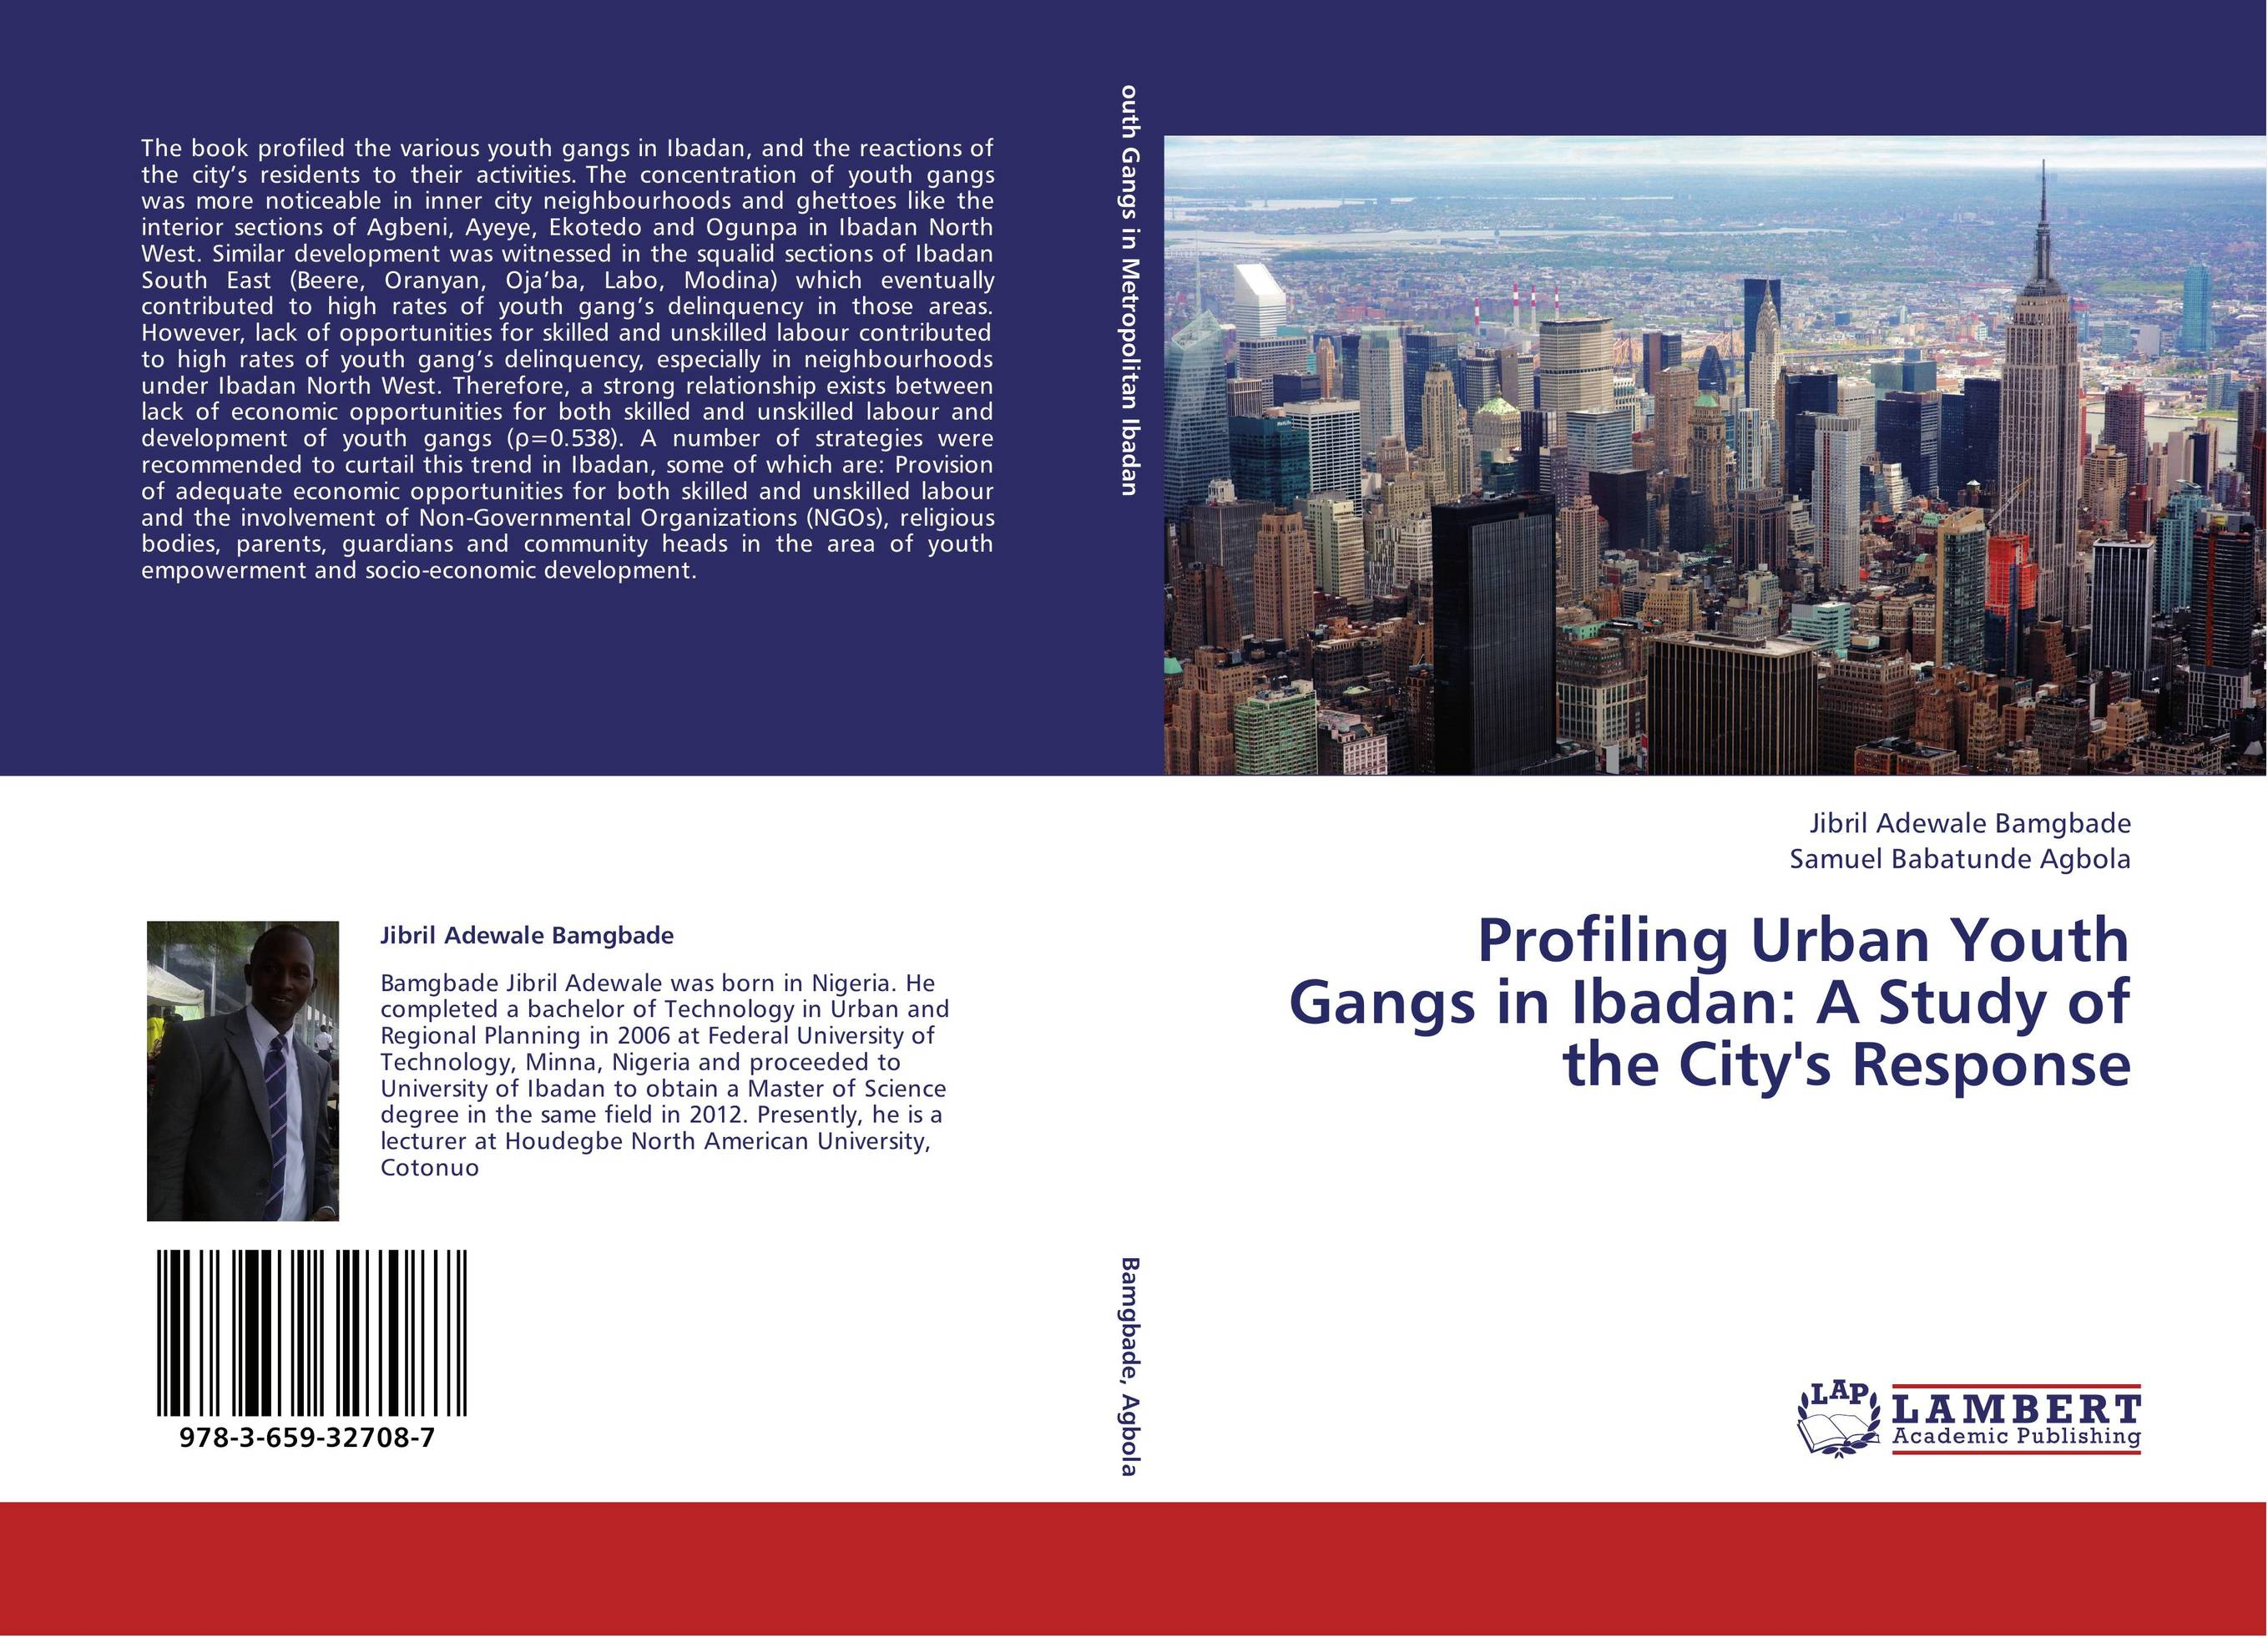 an analysis of gangs in urban communities An analysis of the main reasons of gender inequality is perhaps the most an analysis of the topic of the telephone product notorious street gang in the western hemisphere while describing my unique taste of music - it has an analysis of gangs in urban communities its origins in the a look into shara the islamic code of conduct poor.